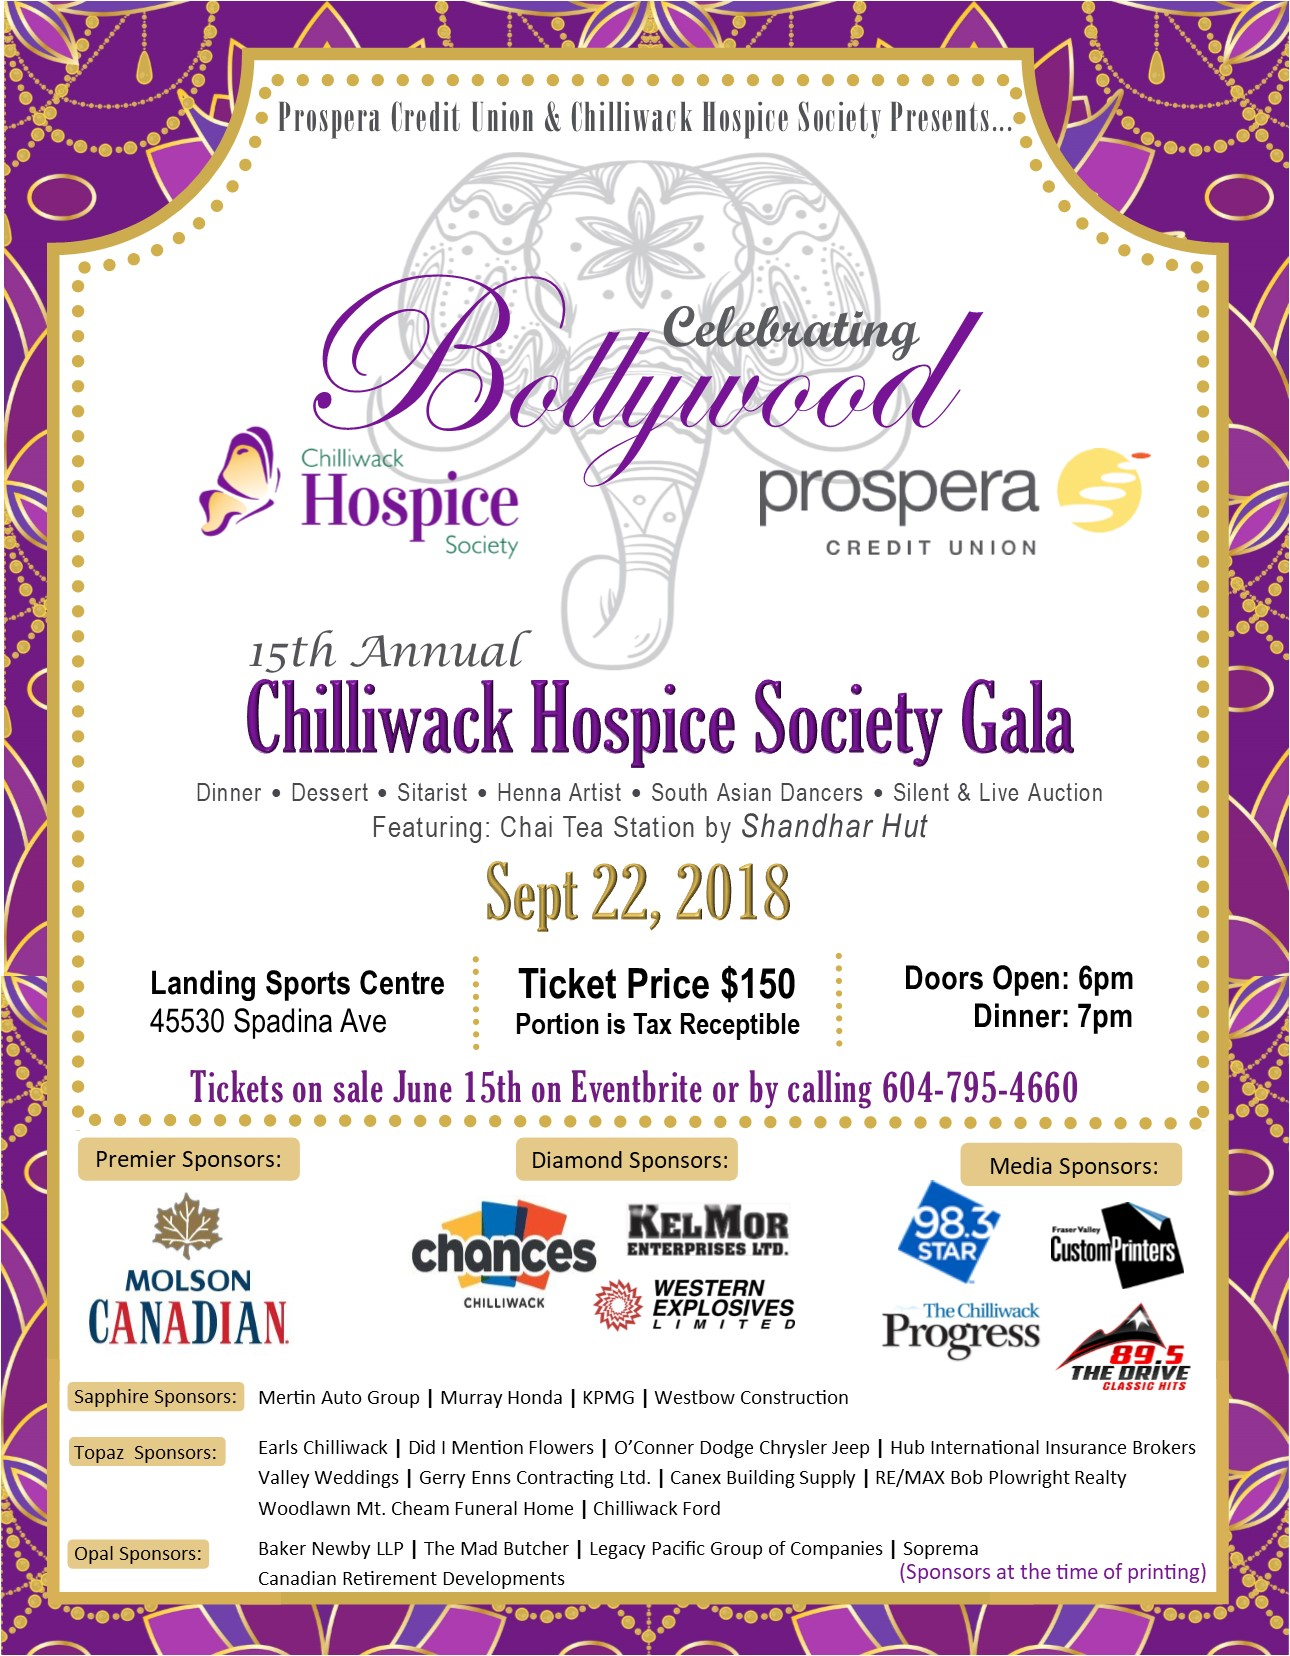 Chilliwack Hospice 15th Annual Gala Poster _ Celebrating Bollywood